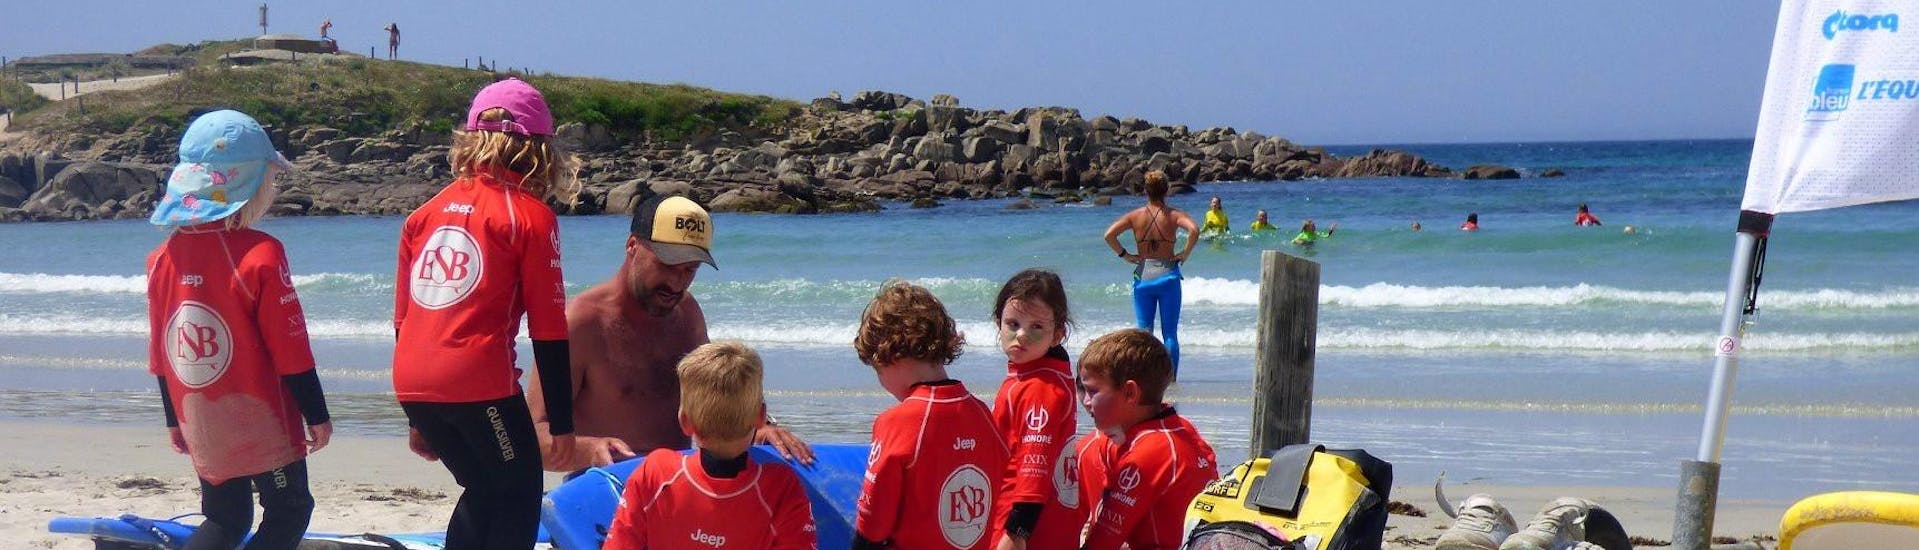 The instructor is giving safety instructions on the beach during the surfing lessons for kids in la pointe de la torche with ESB la torche.